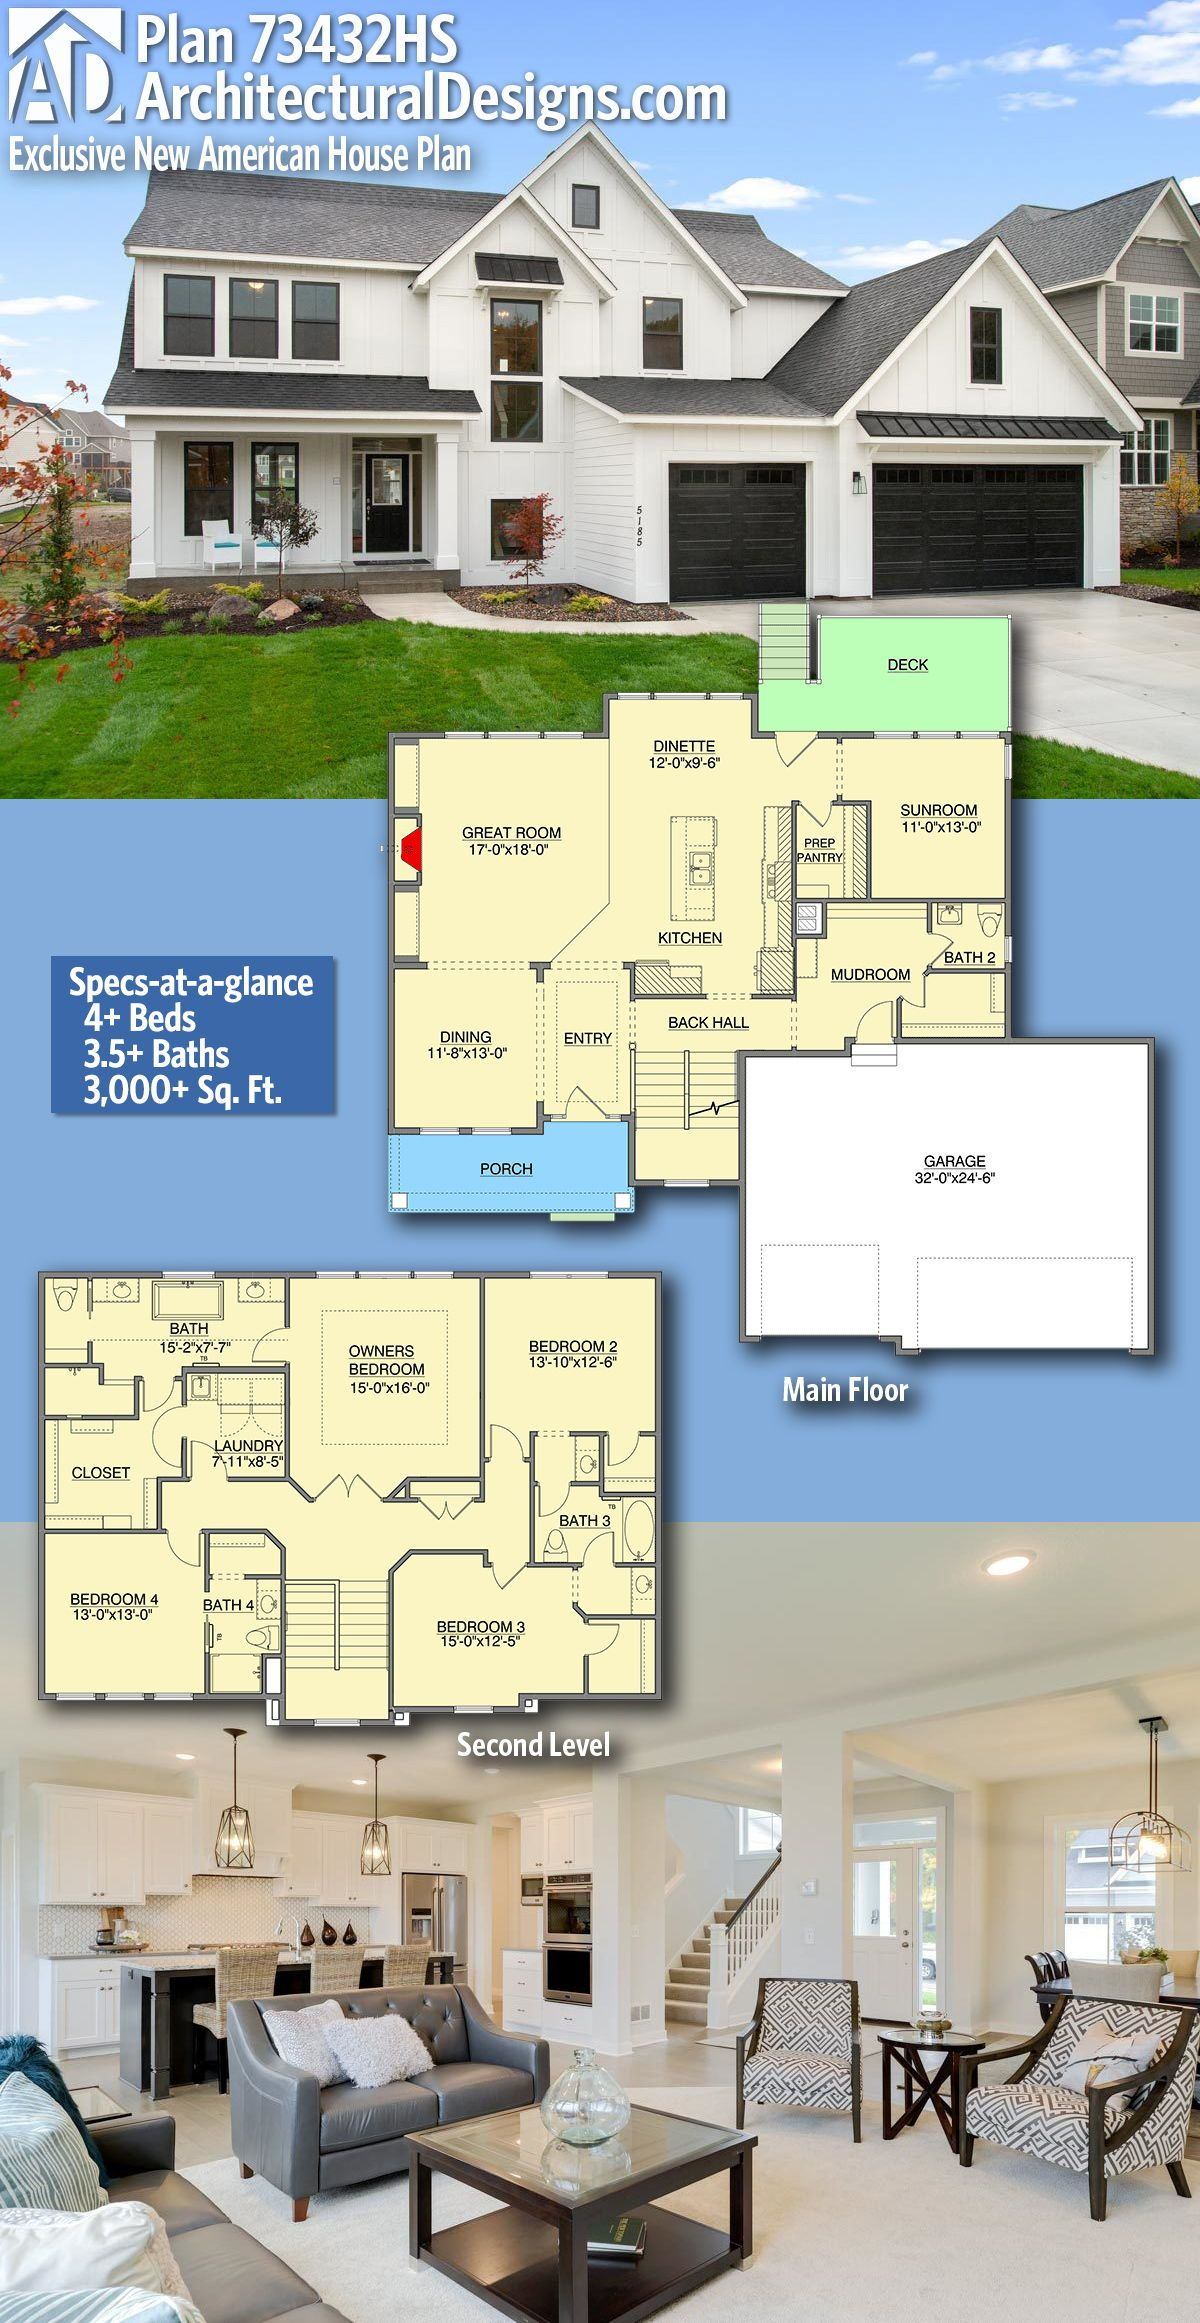 Architectural Designs New American Home Plan 73432hs Gives You 4 Bedrooms 3 5 Baths And 3 Architectural Design House Plans American Houses Dream House Plans